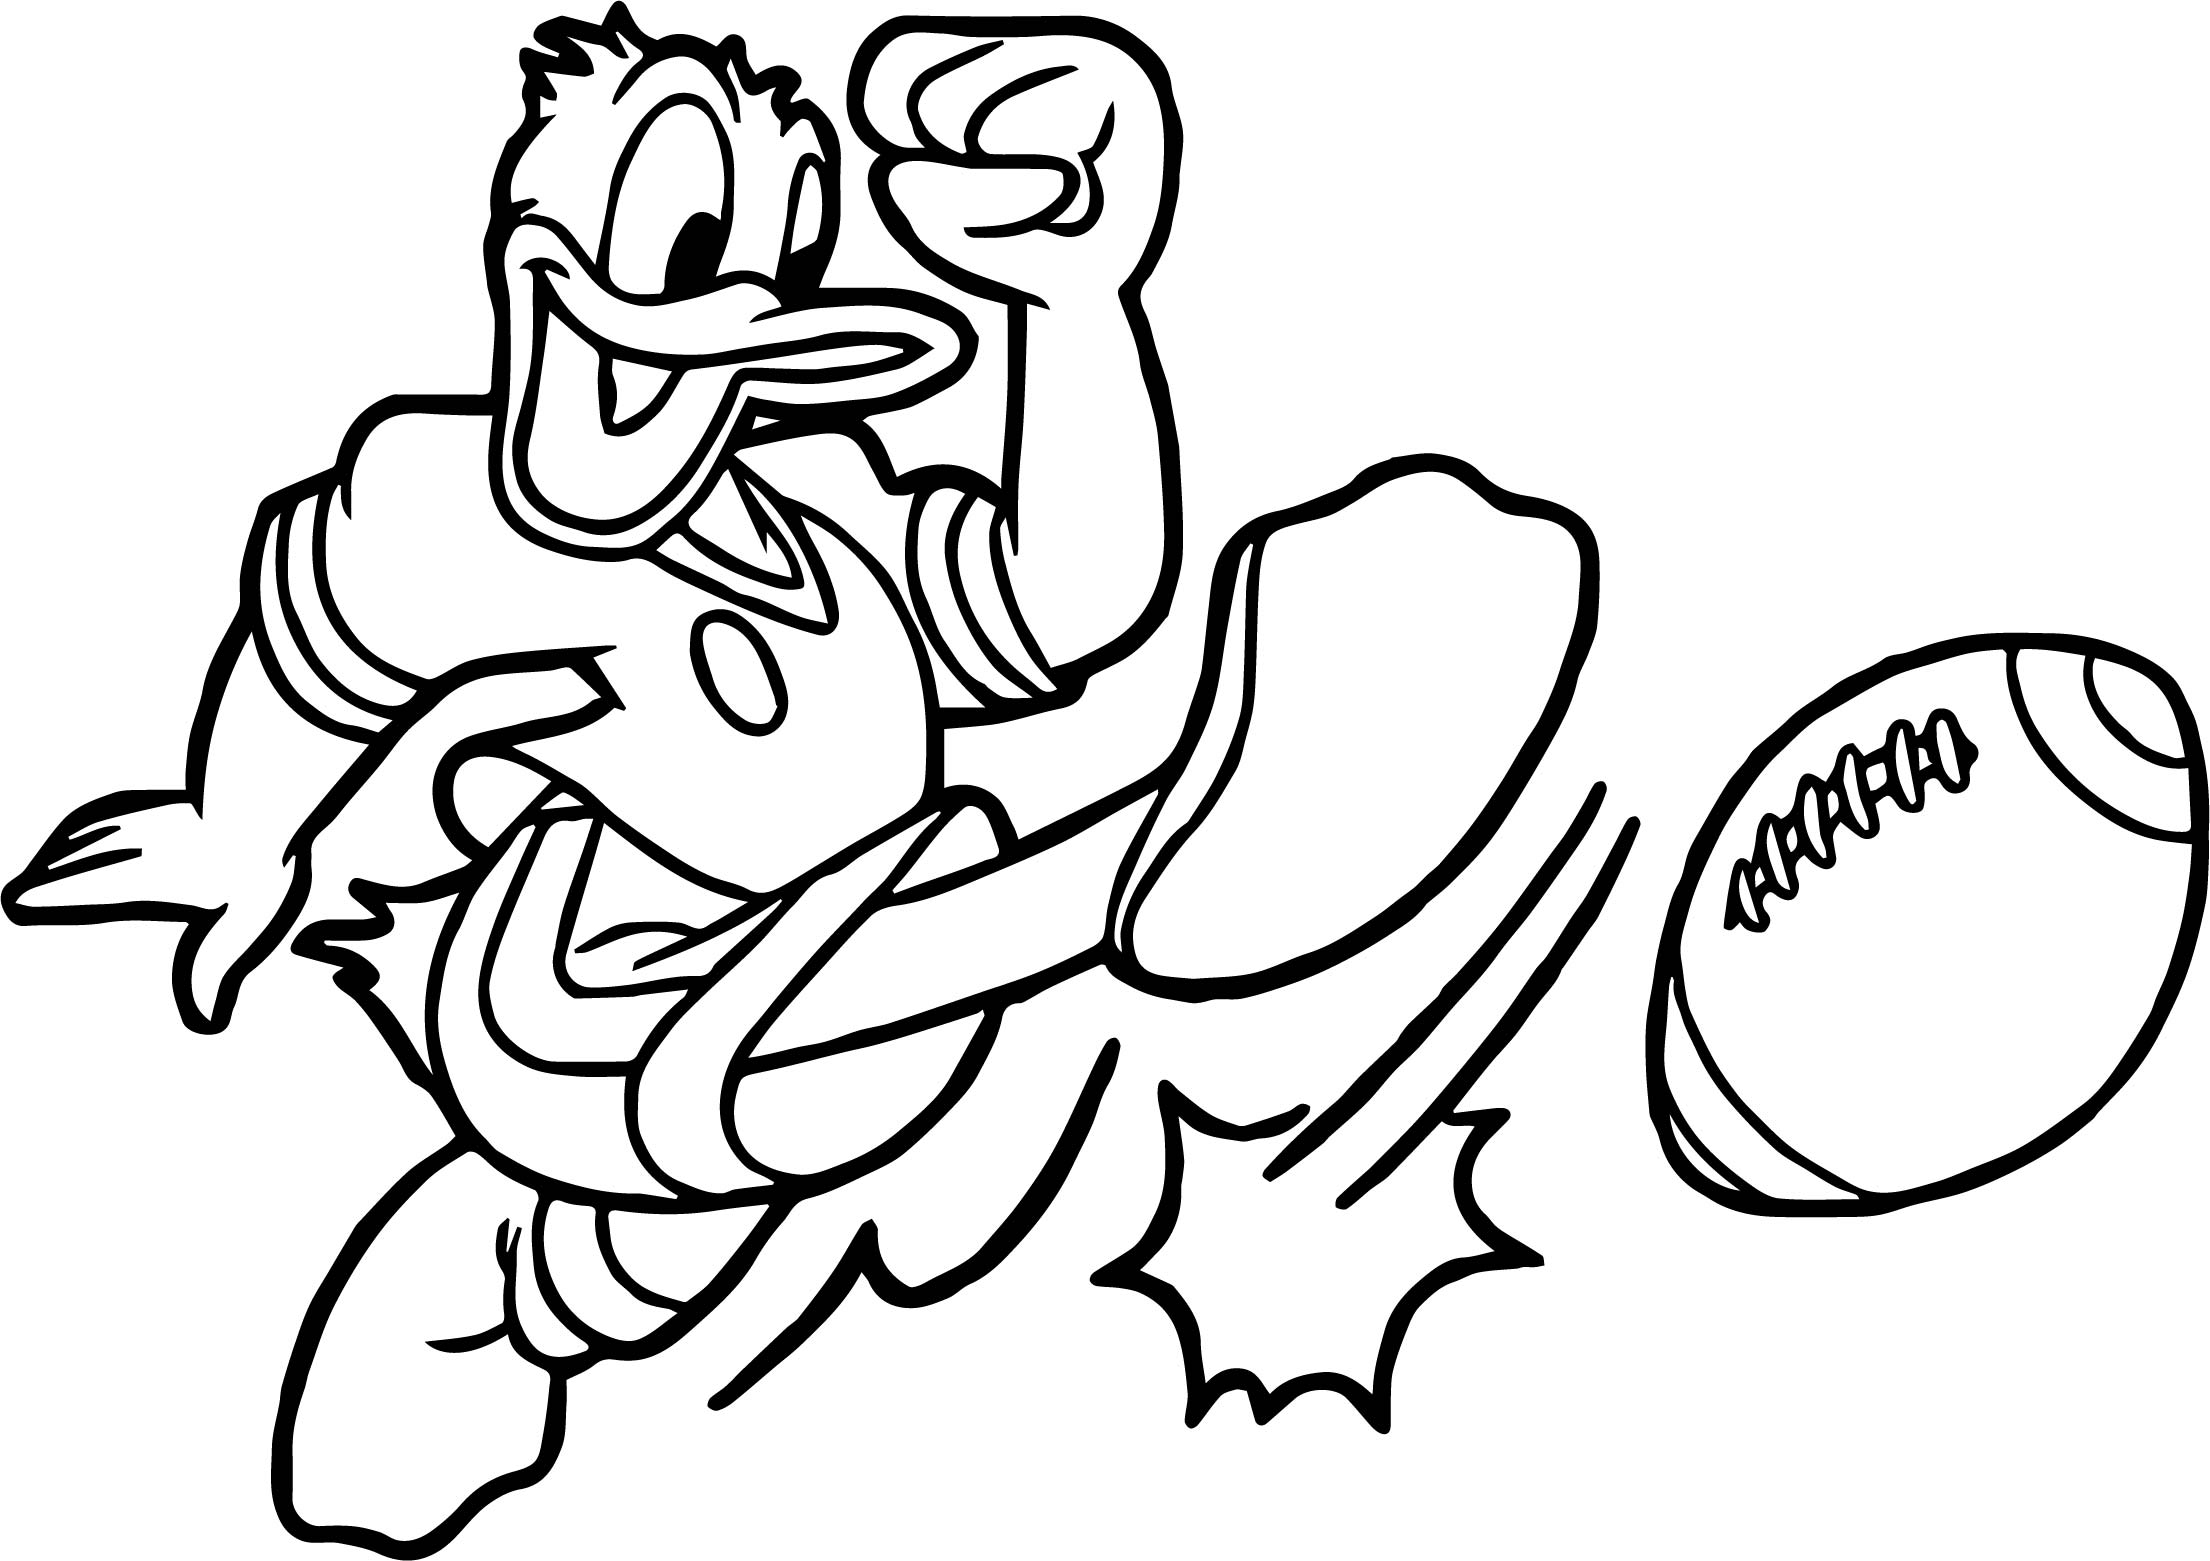 Donald duck american playing football coloring page for Football color page